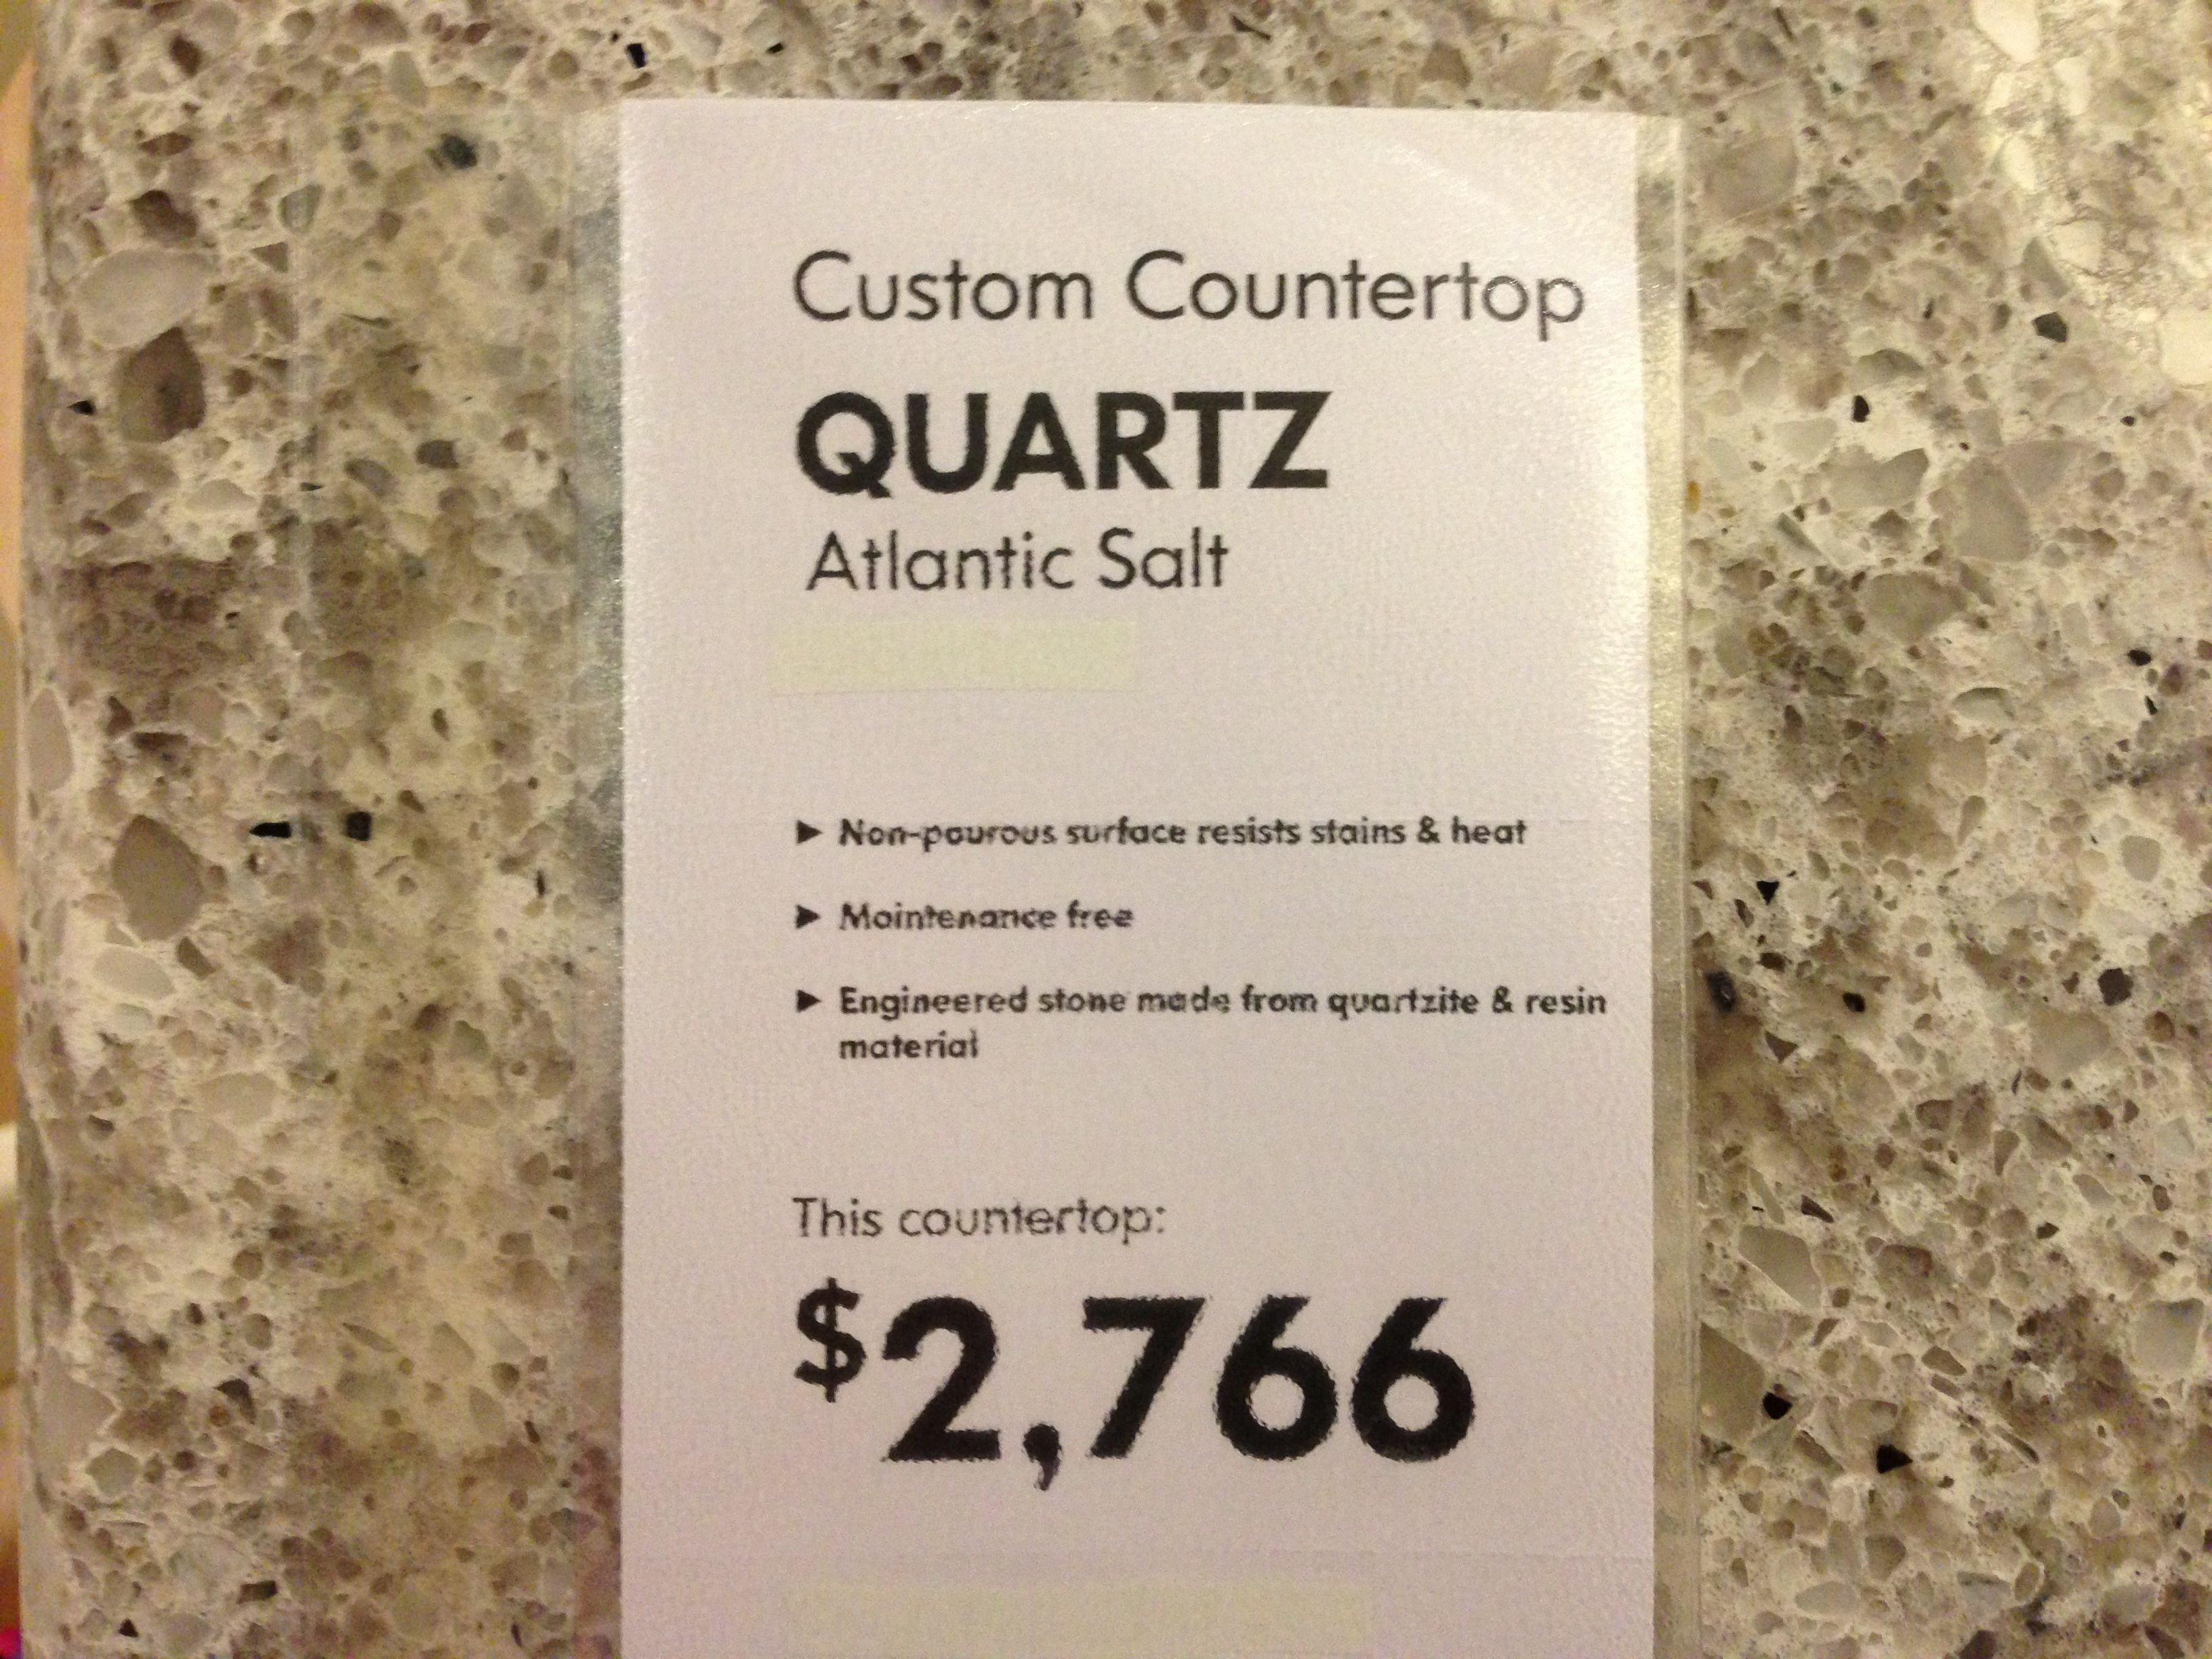 Cost Of Quartz Countertops Installed Ikea Countertop Installation Cost Letmauspamex Over Blog